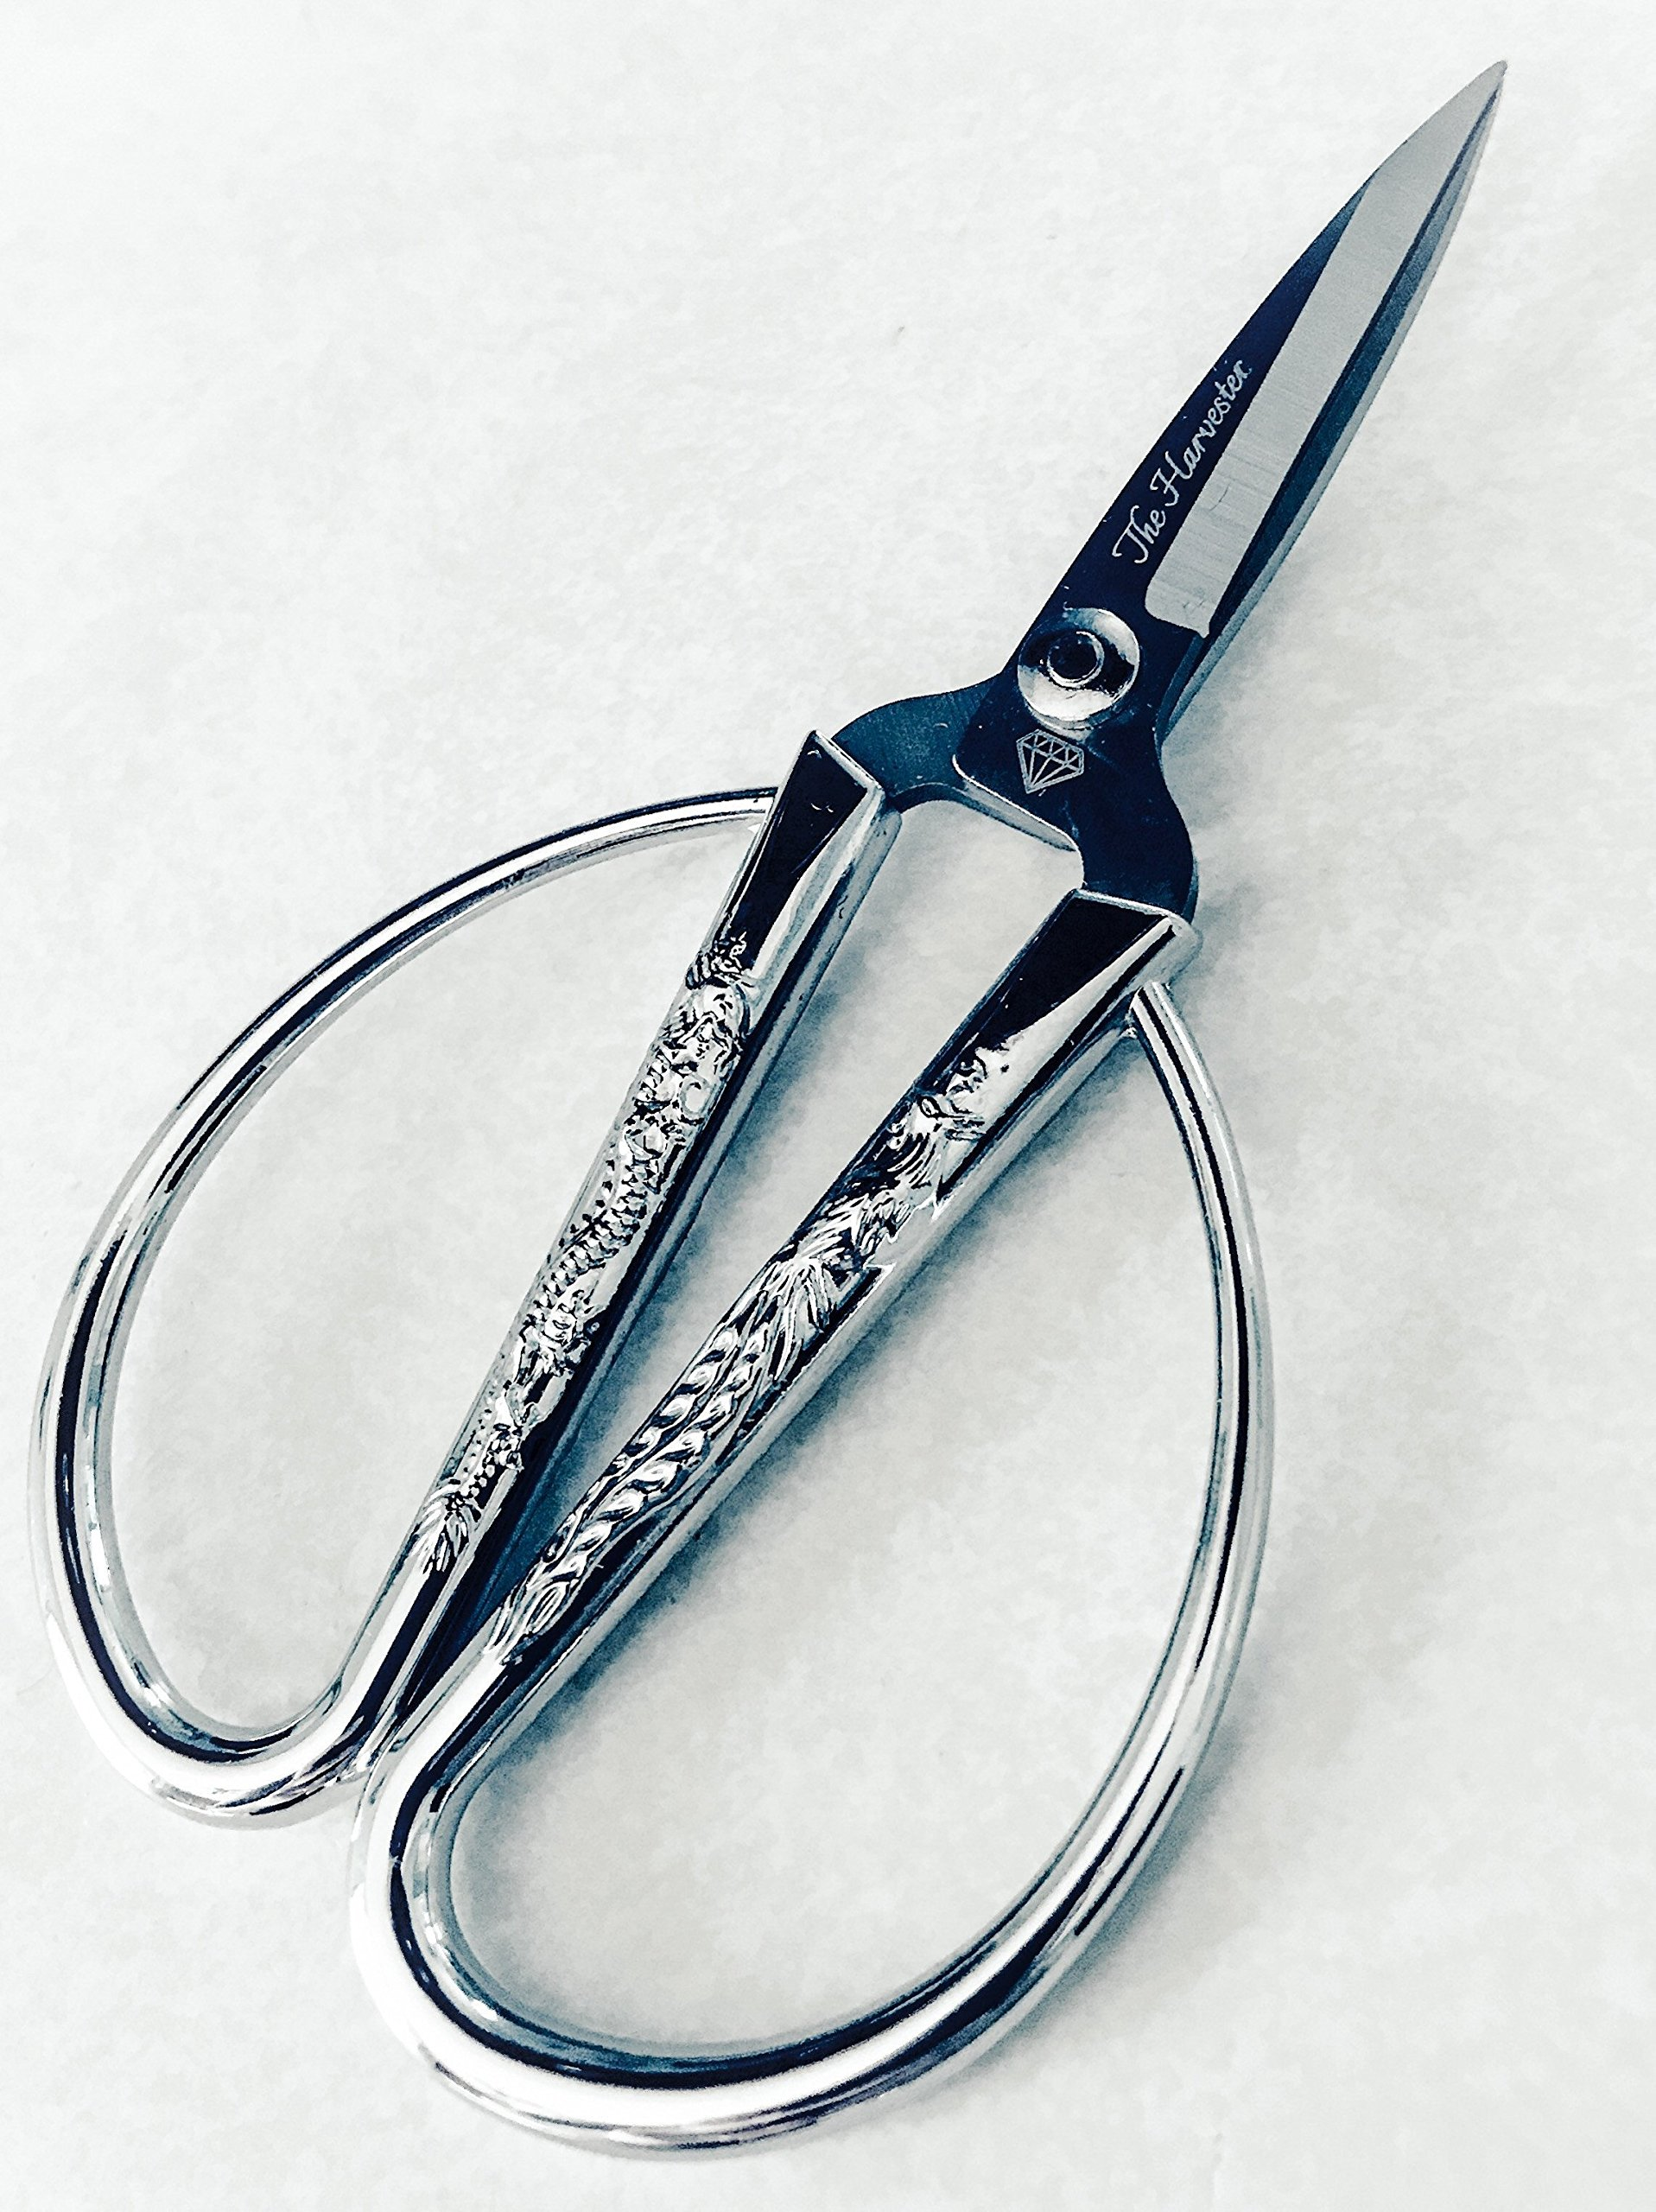 The Harvester » 5-inch Cannabis Trimming Scissors